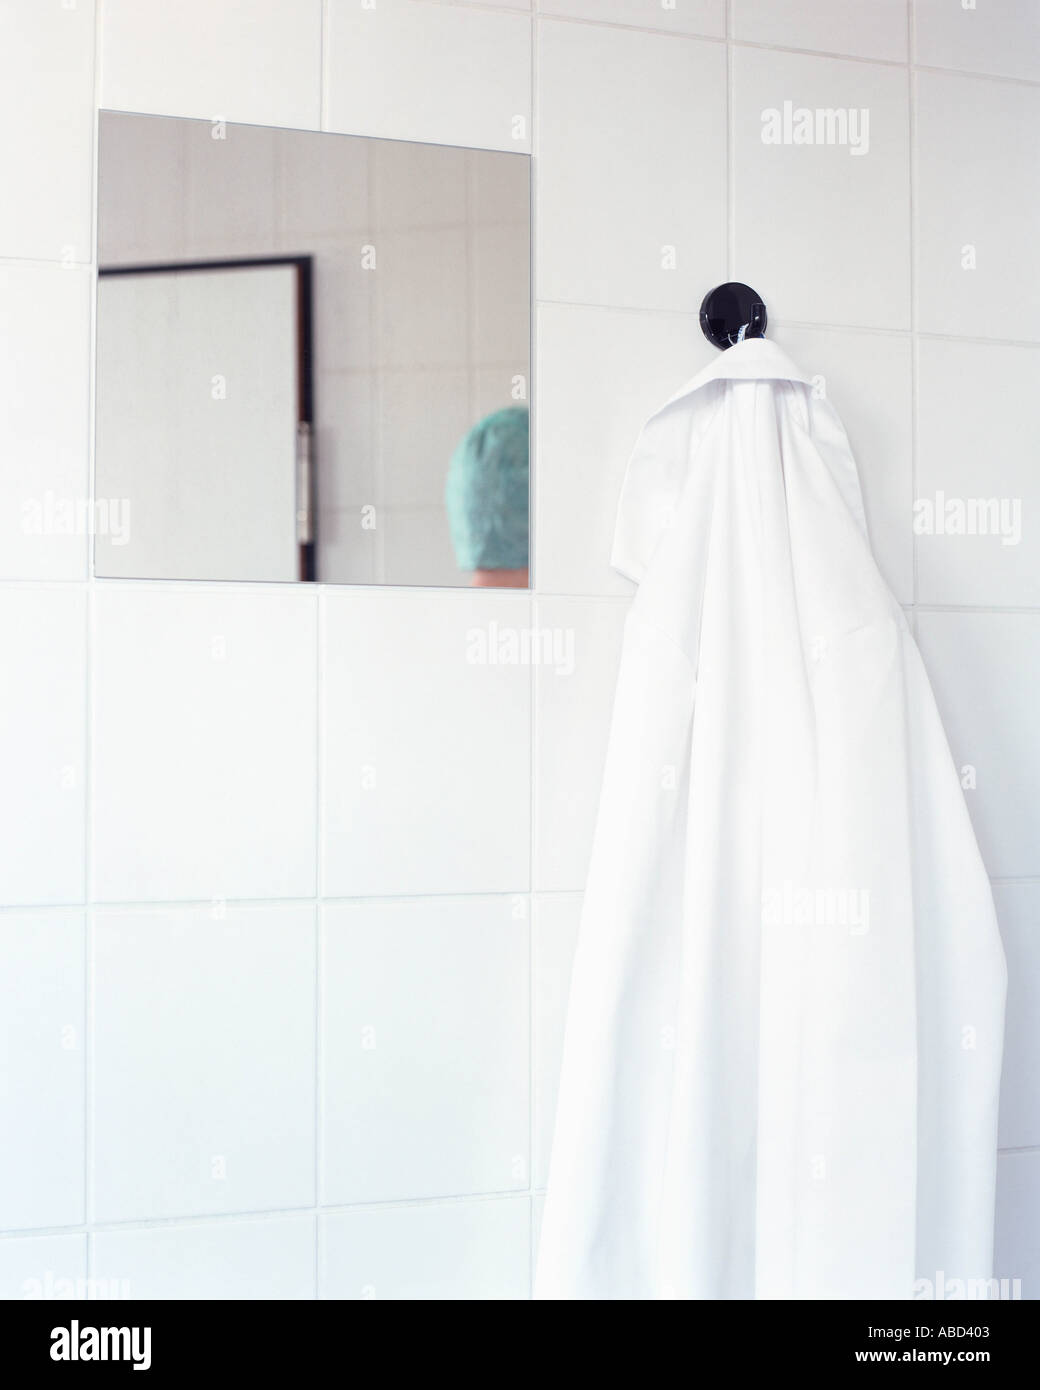 Surgical gown hanging on wall - Stock Image